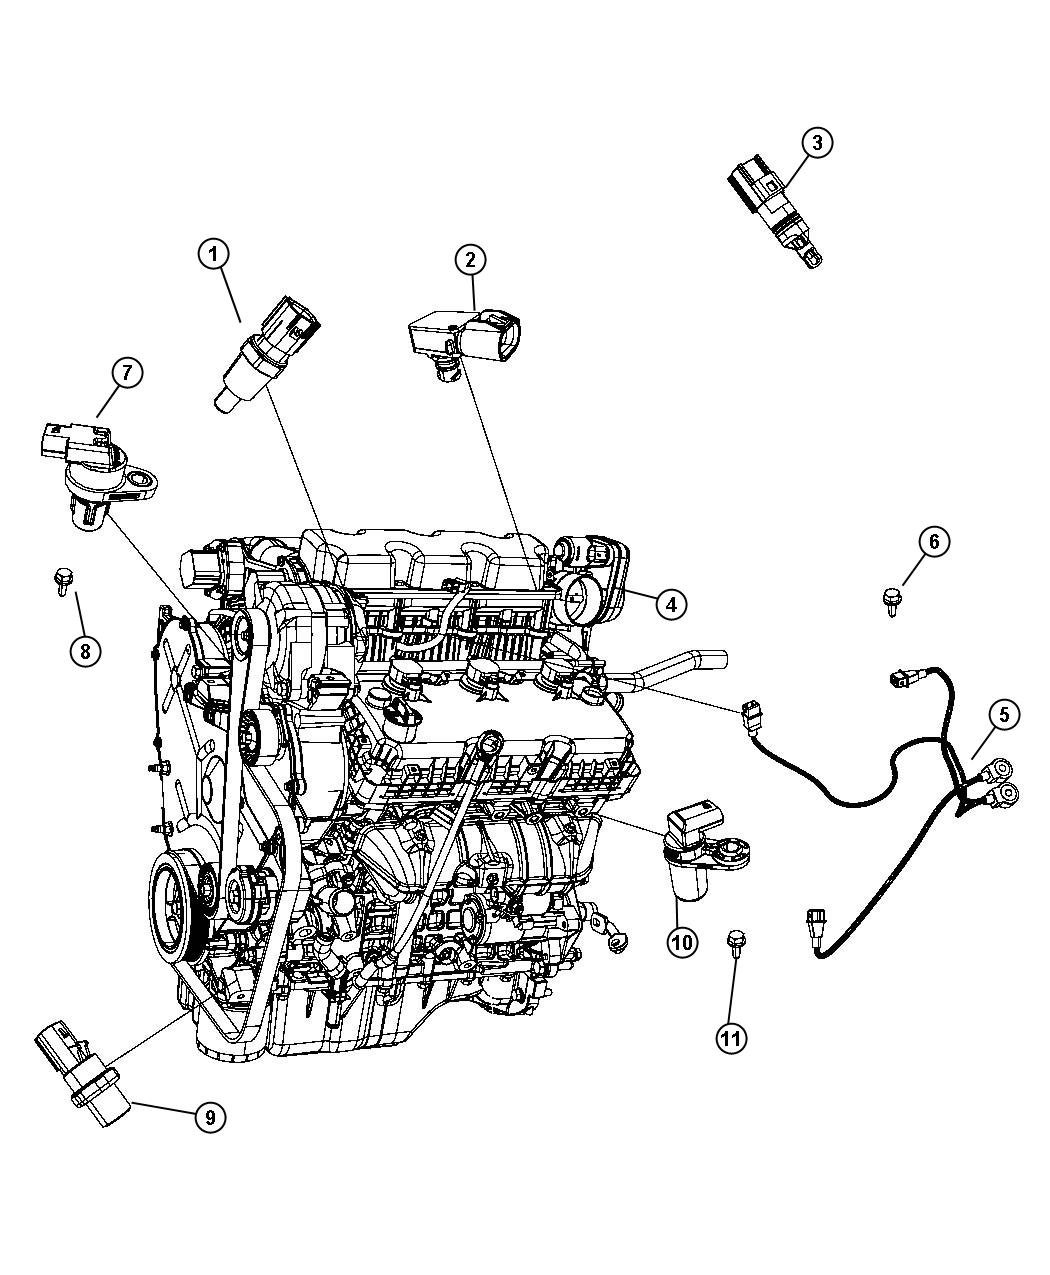 Dodge Journey Spark Plug Diagram, Dodge, Free Engine Image